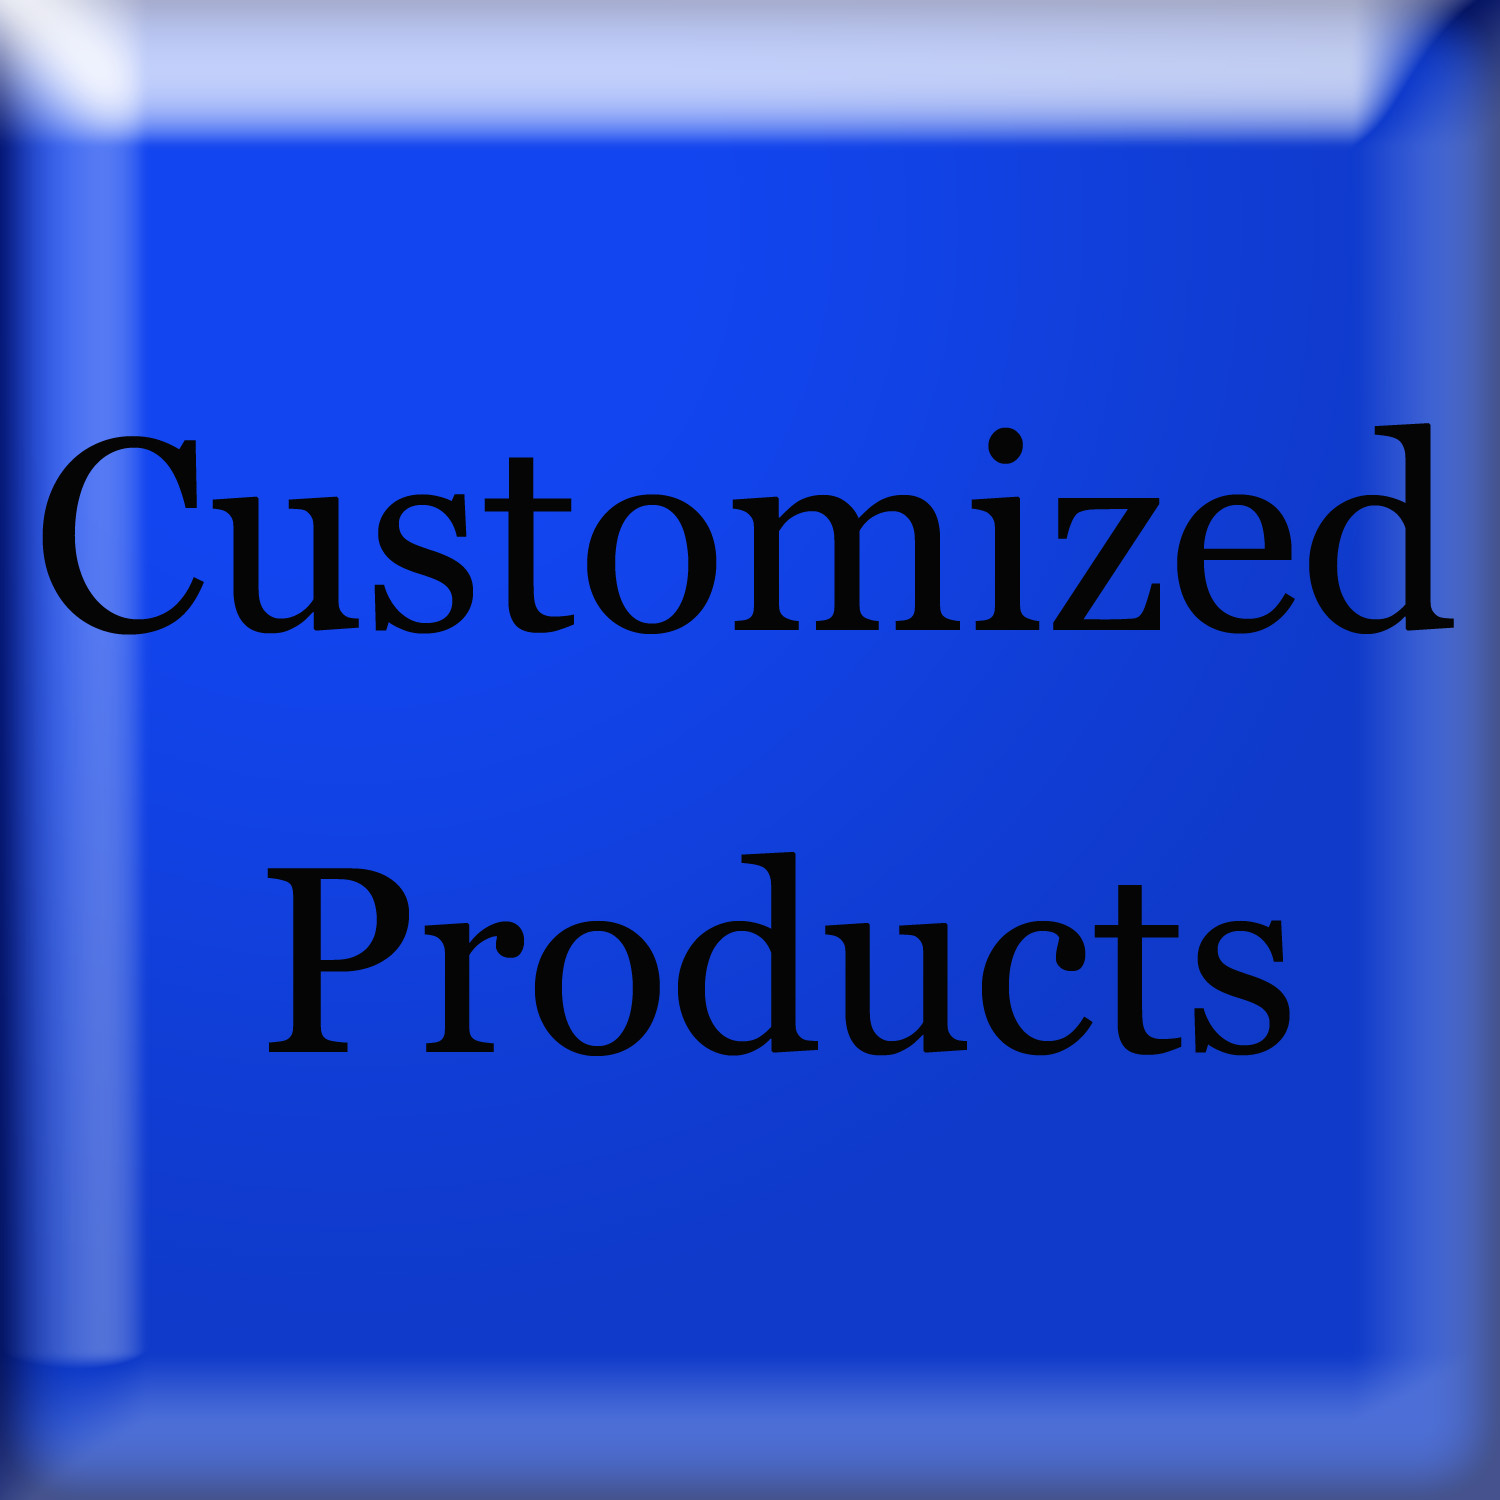 Customizing Services